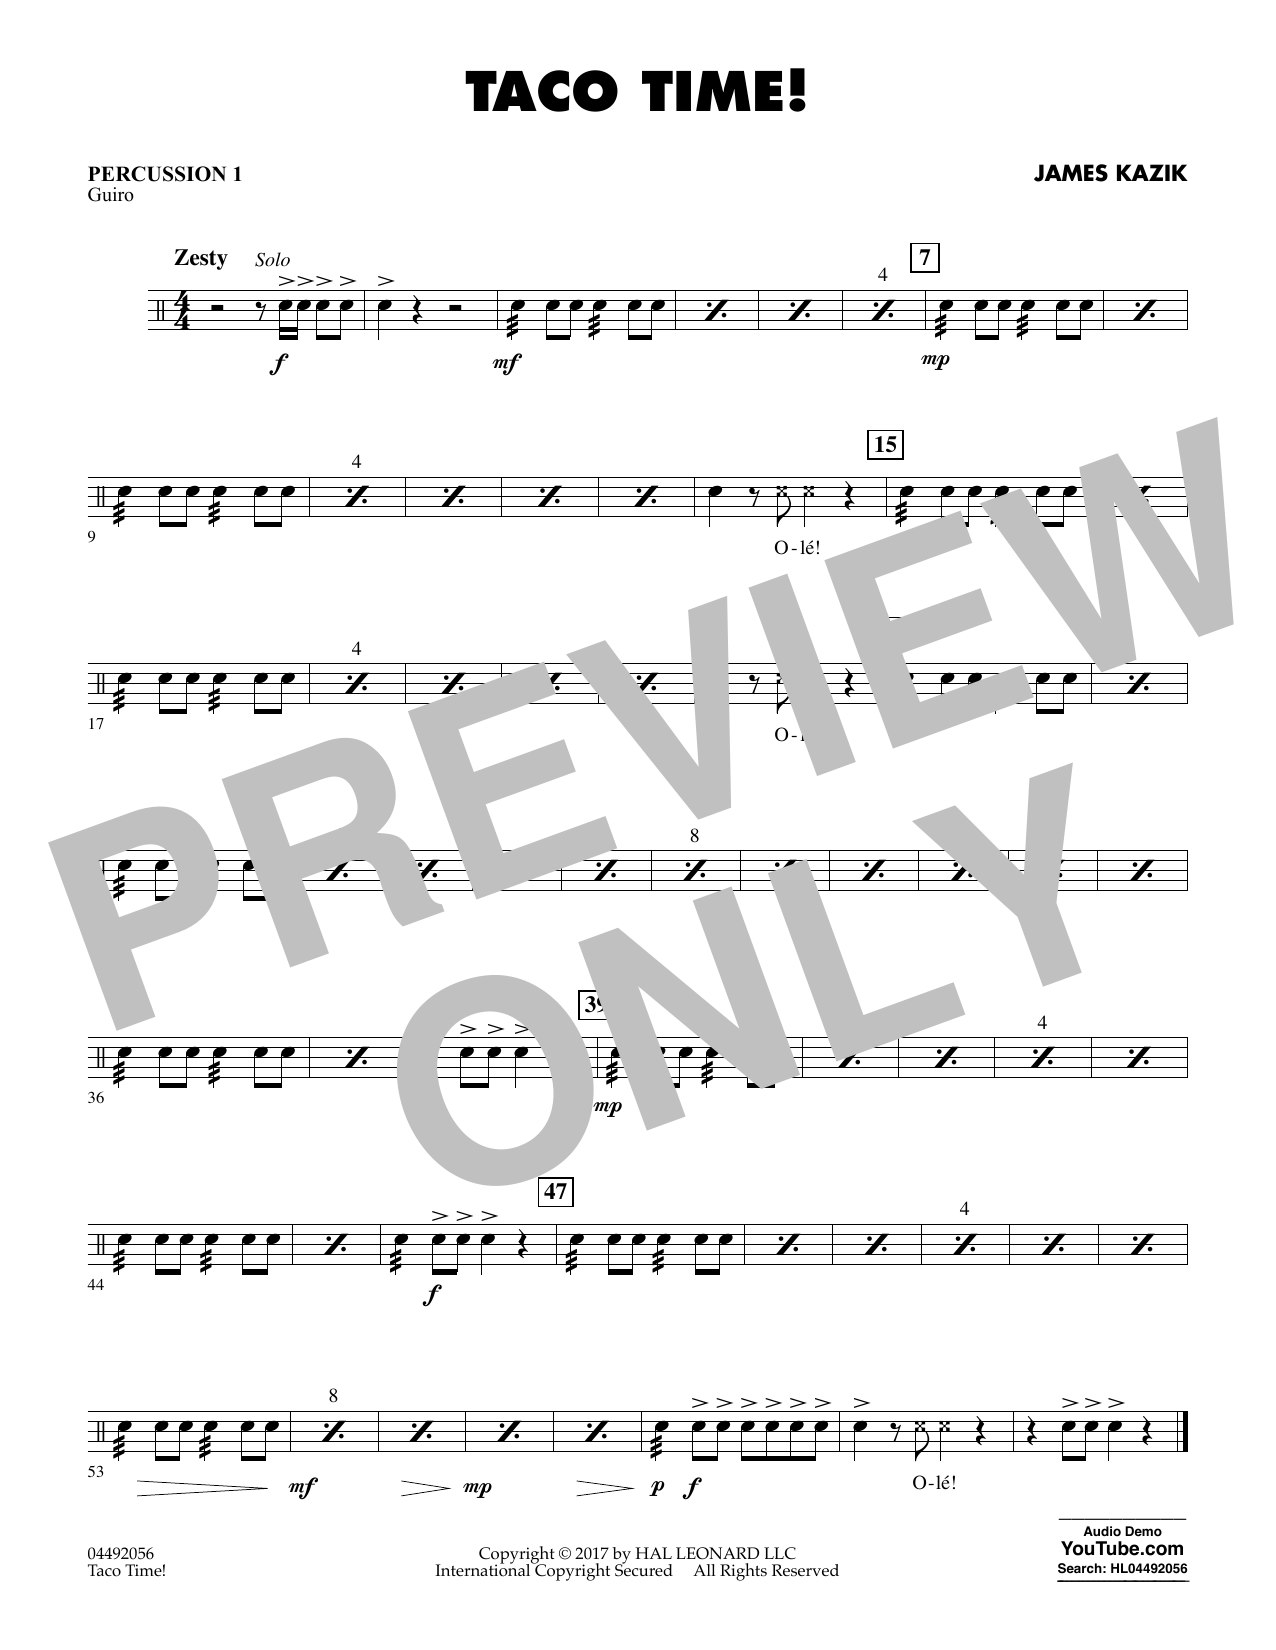 James Kazik Taco Time! - Percussion 1 sheet music notes and chords. Download Printable PDF.